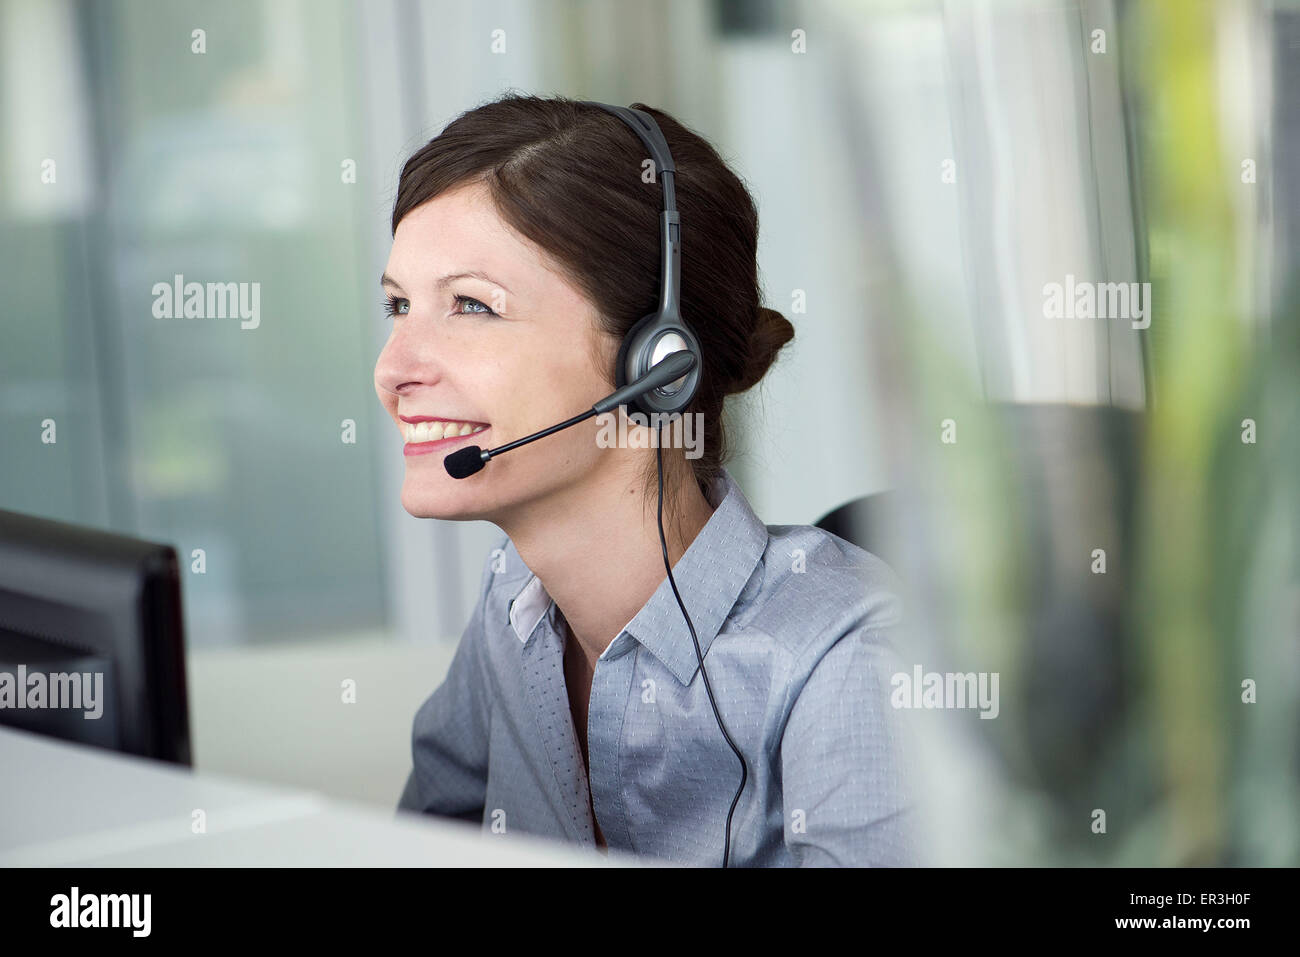 Receptionist wearing headset, smiling cheerfully - Stock Image